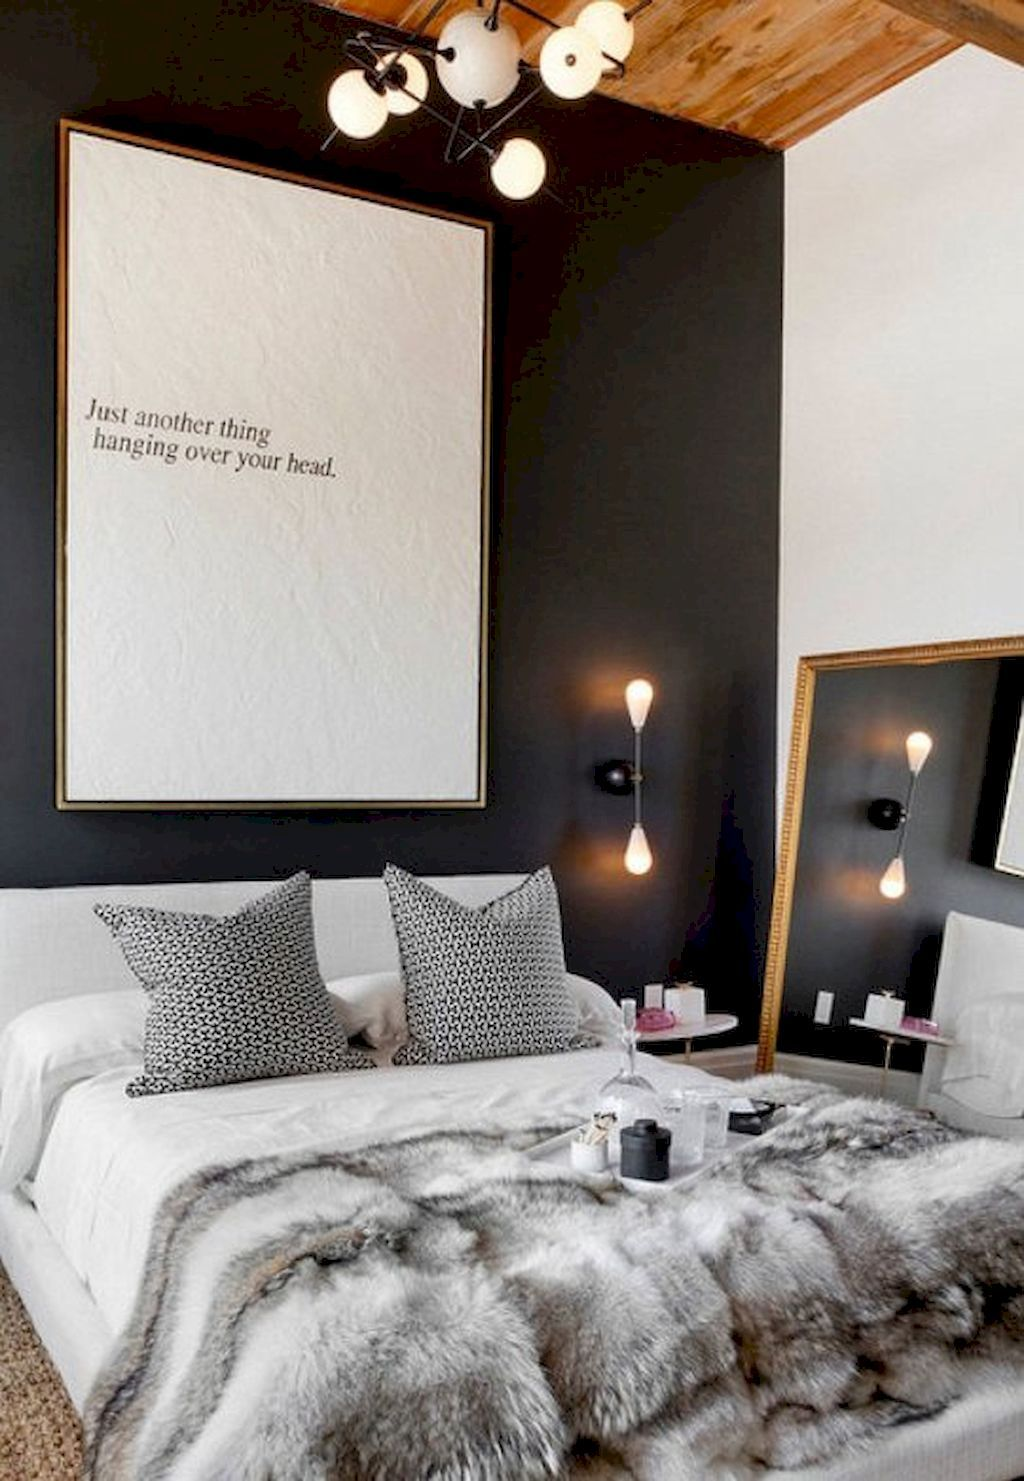 51 Comfy First Apartment Bedroom Ideas